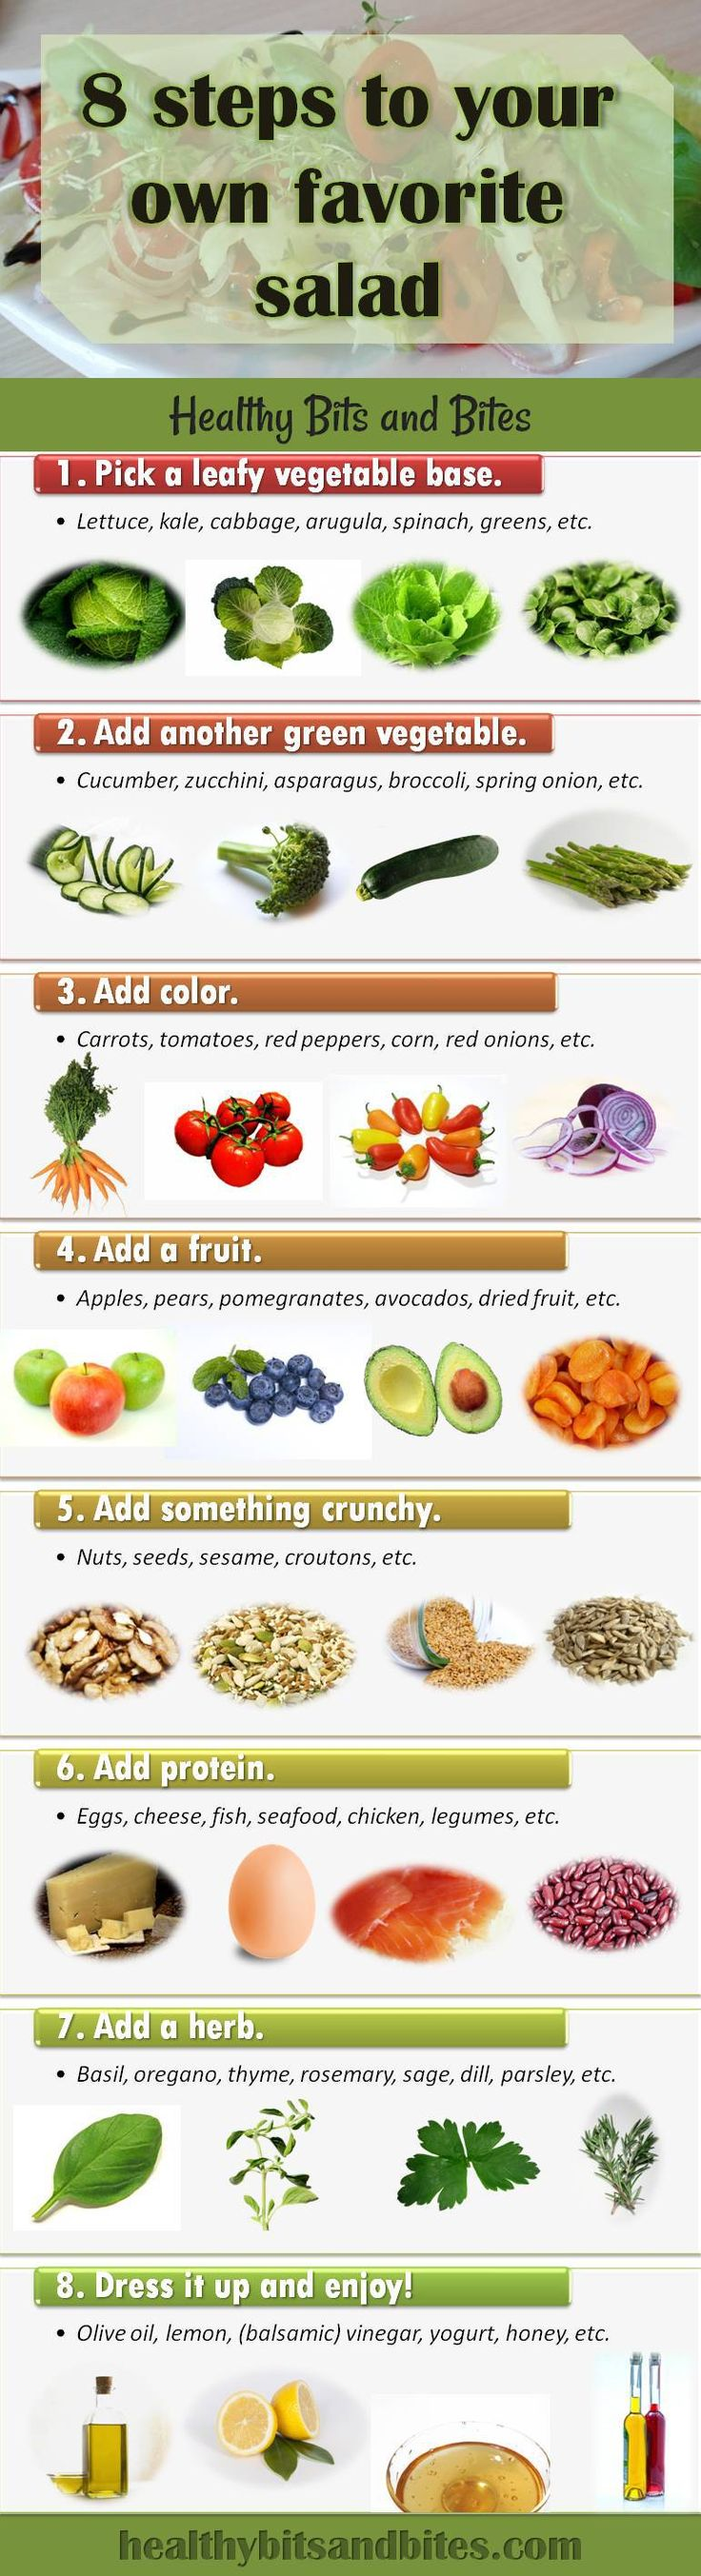 8 steps to your own favorite salad | Healthy Bits and Bites